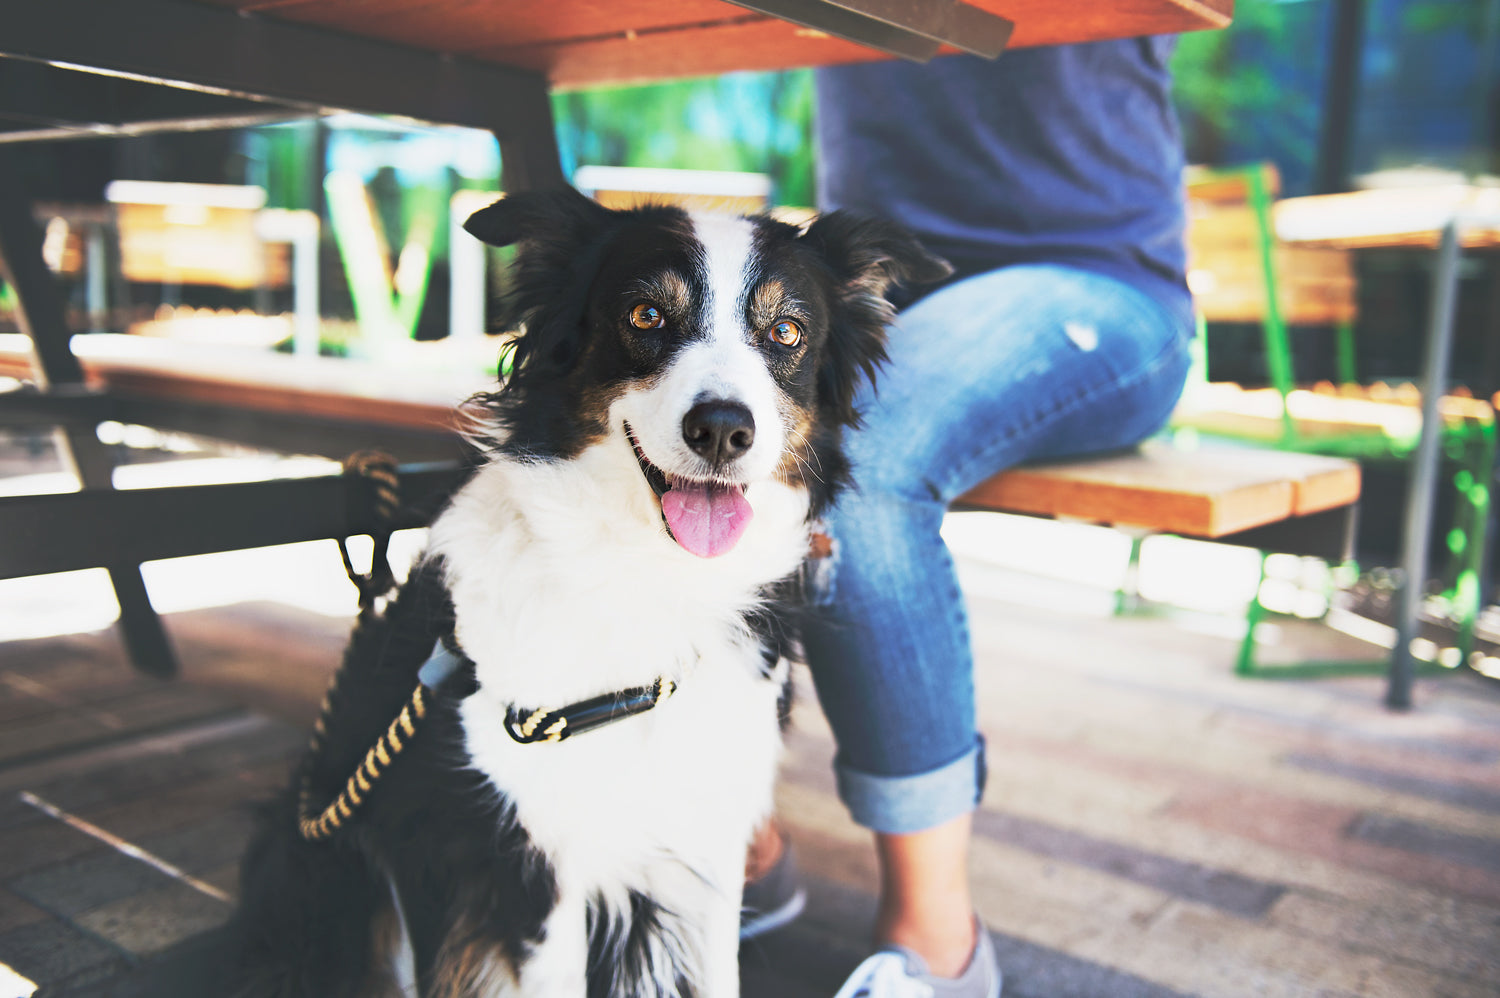 Patio Etiquette - Dining With Your Dog